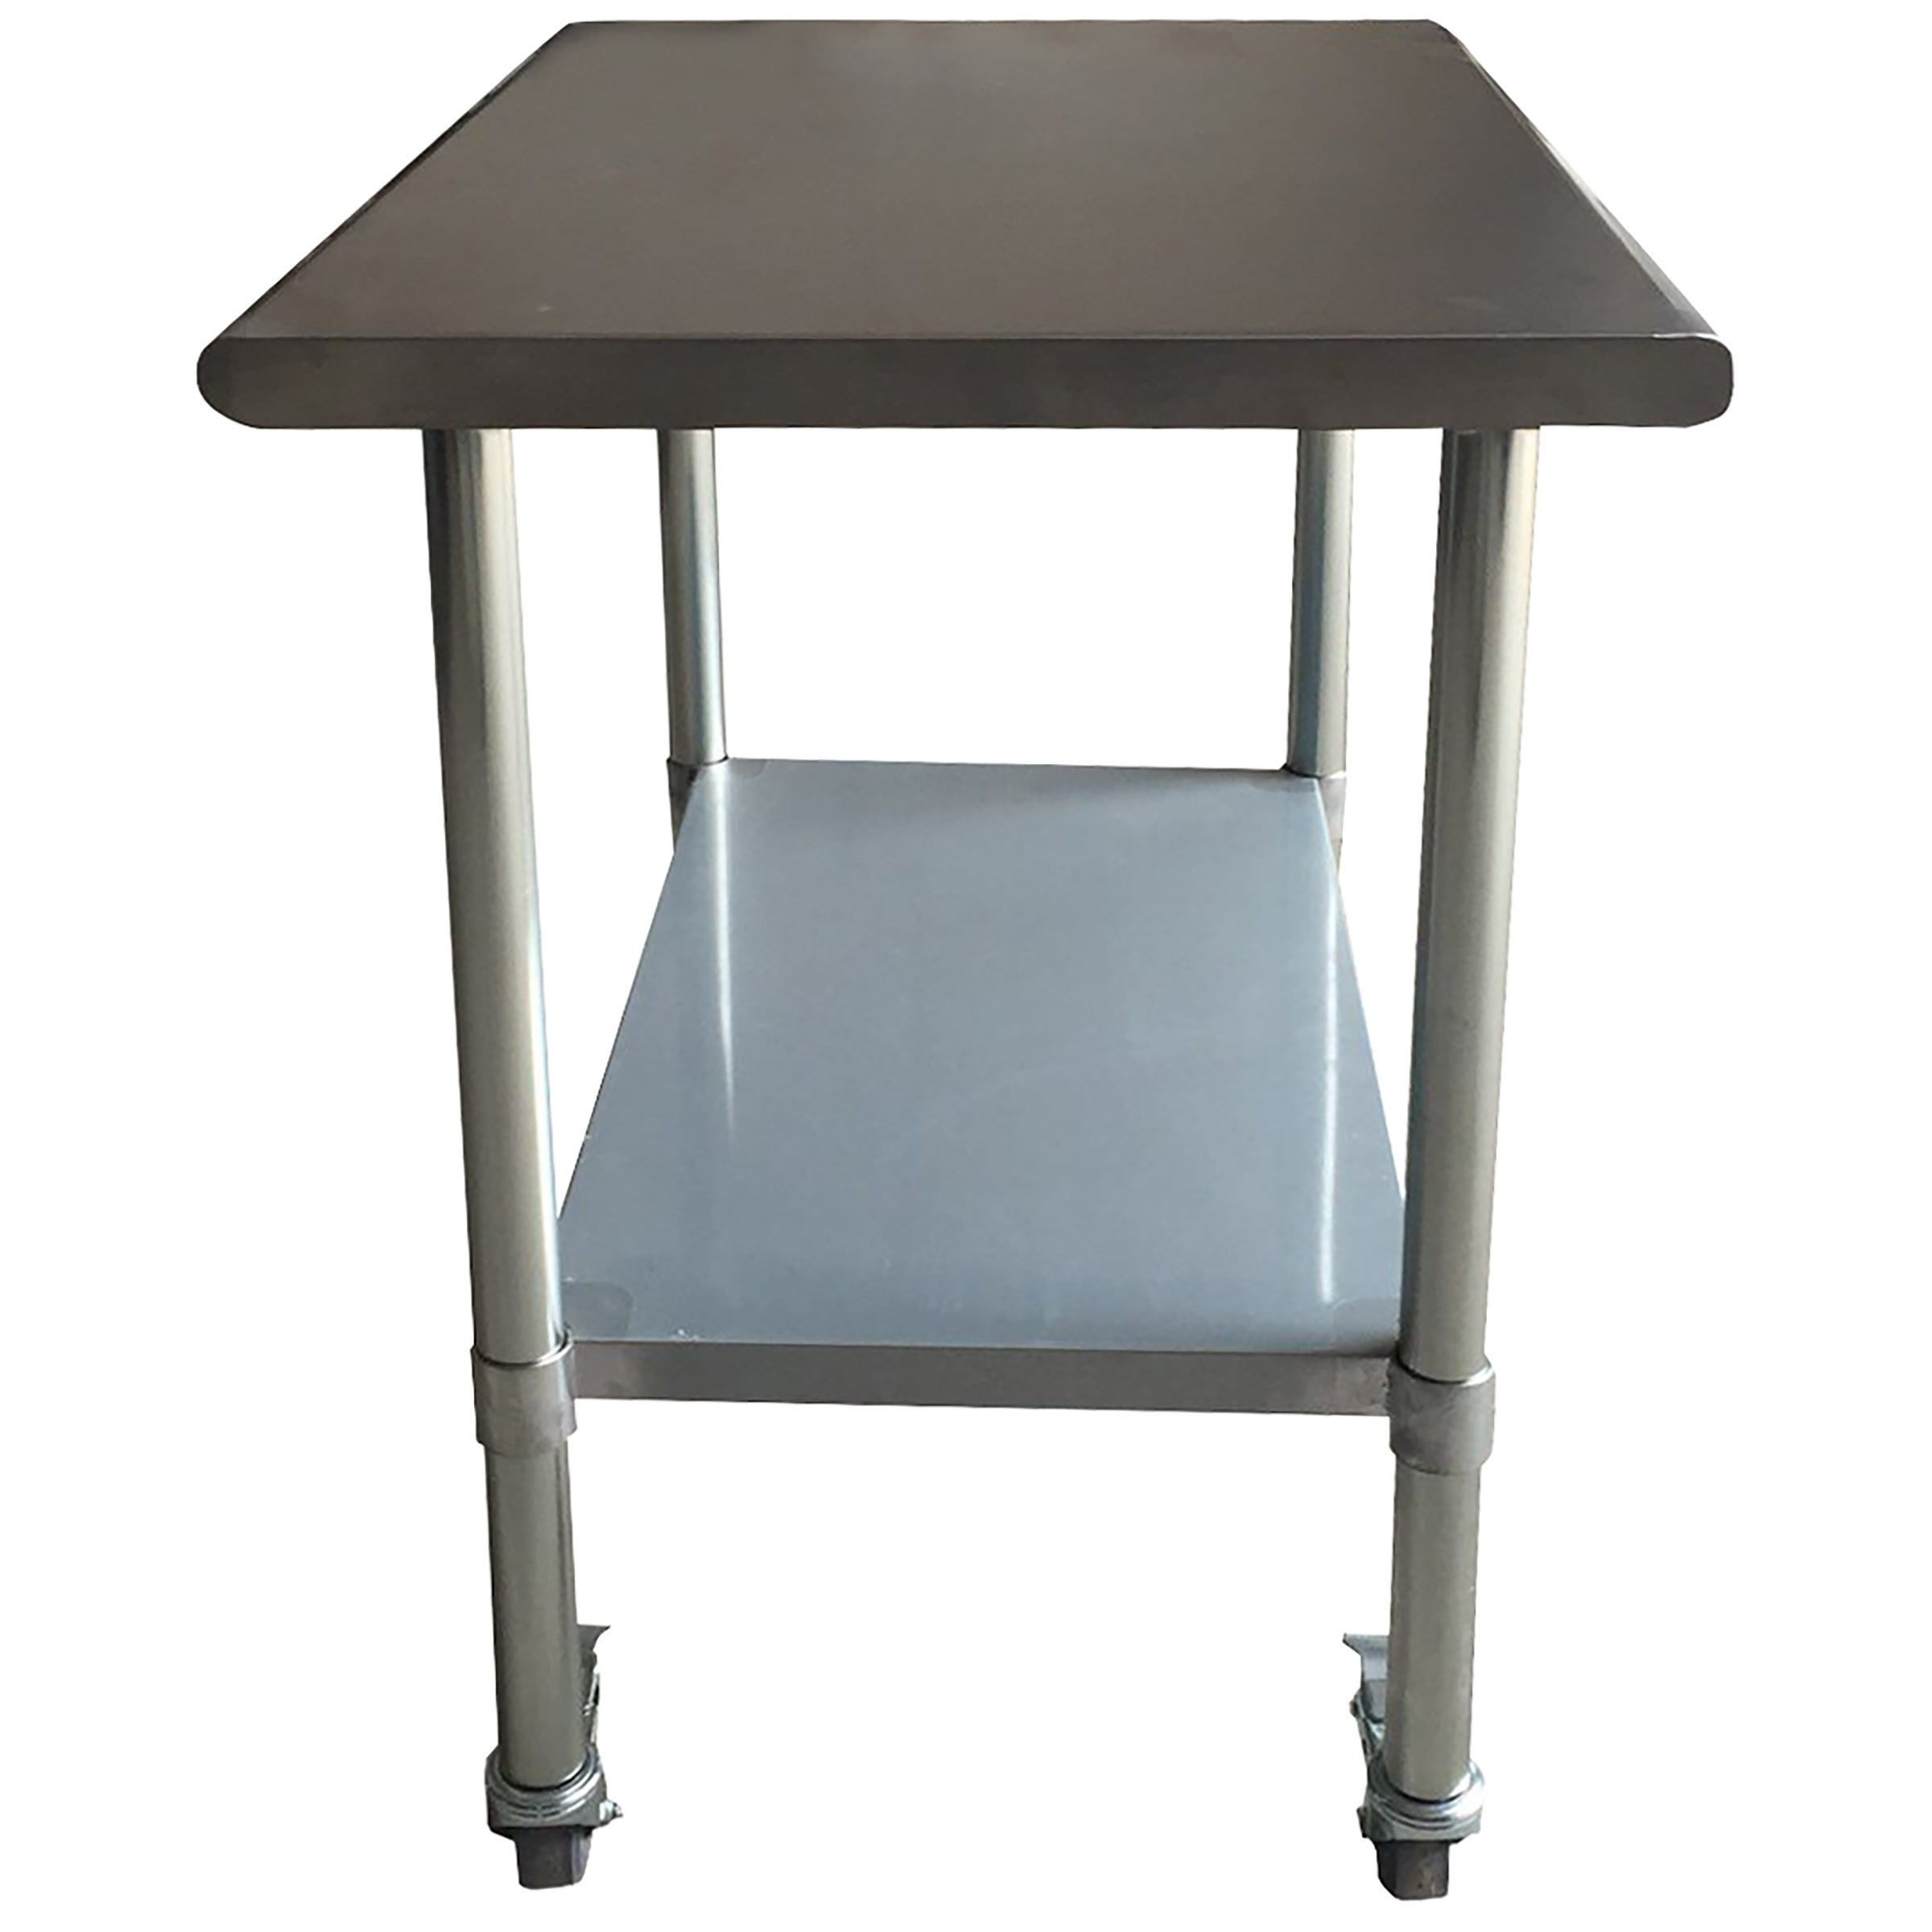 Shop Stainless Steel Work Table With Casters X Inches Free - Stainless steel work table with wheels